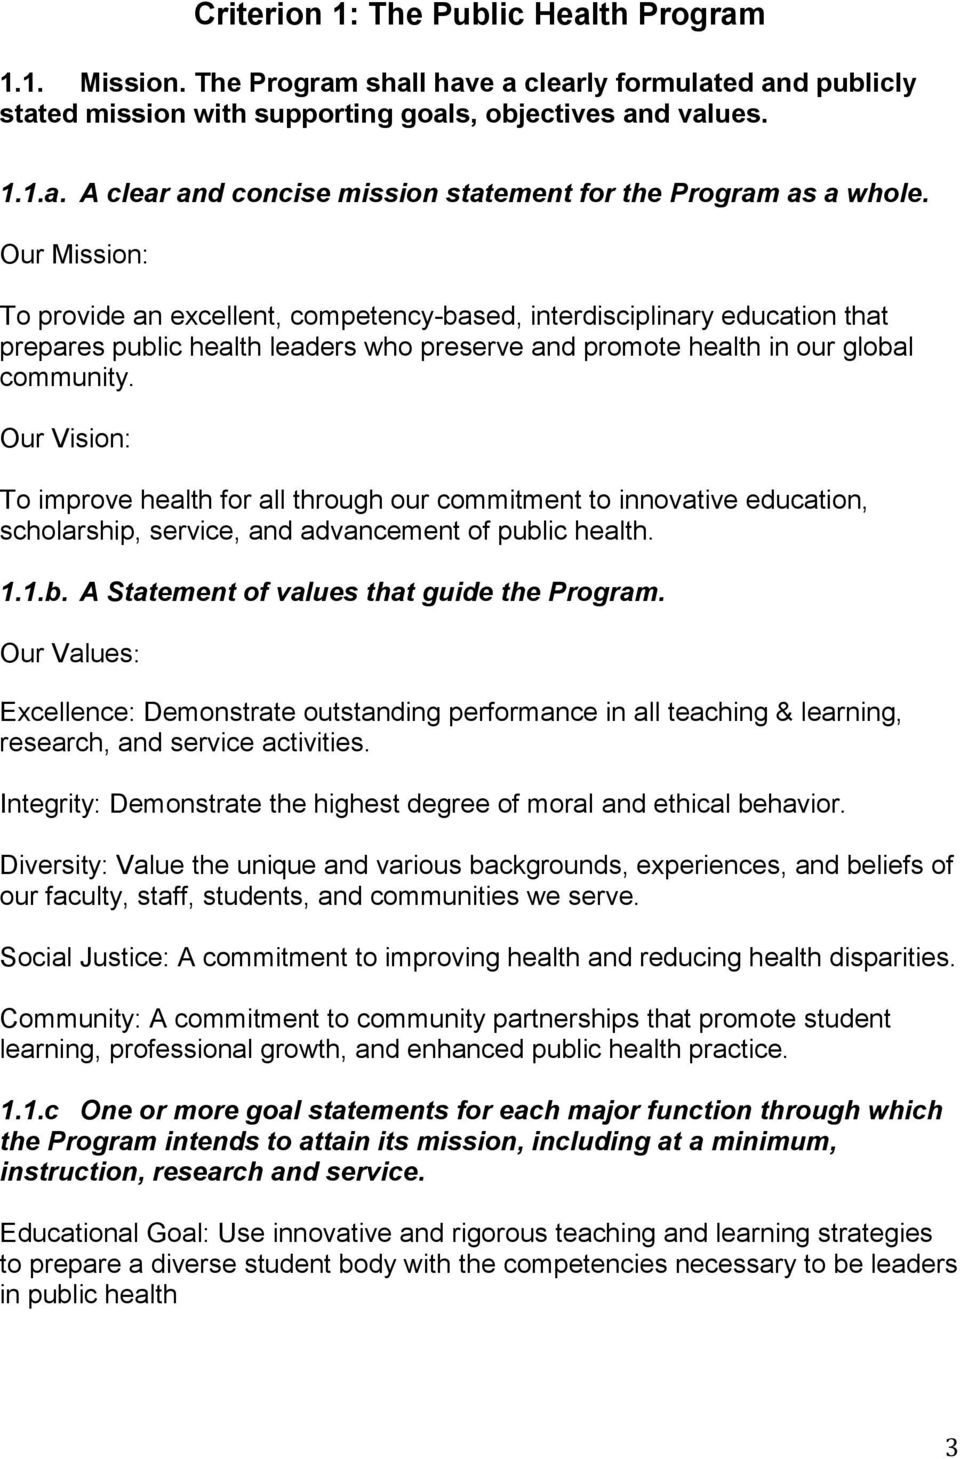 Our Vision: To improve health for all through our commitment to innovative education, scholarship, service, and advancement of public health. 1.1.b. A Statement of values that guide the Program.